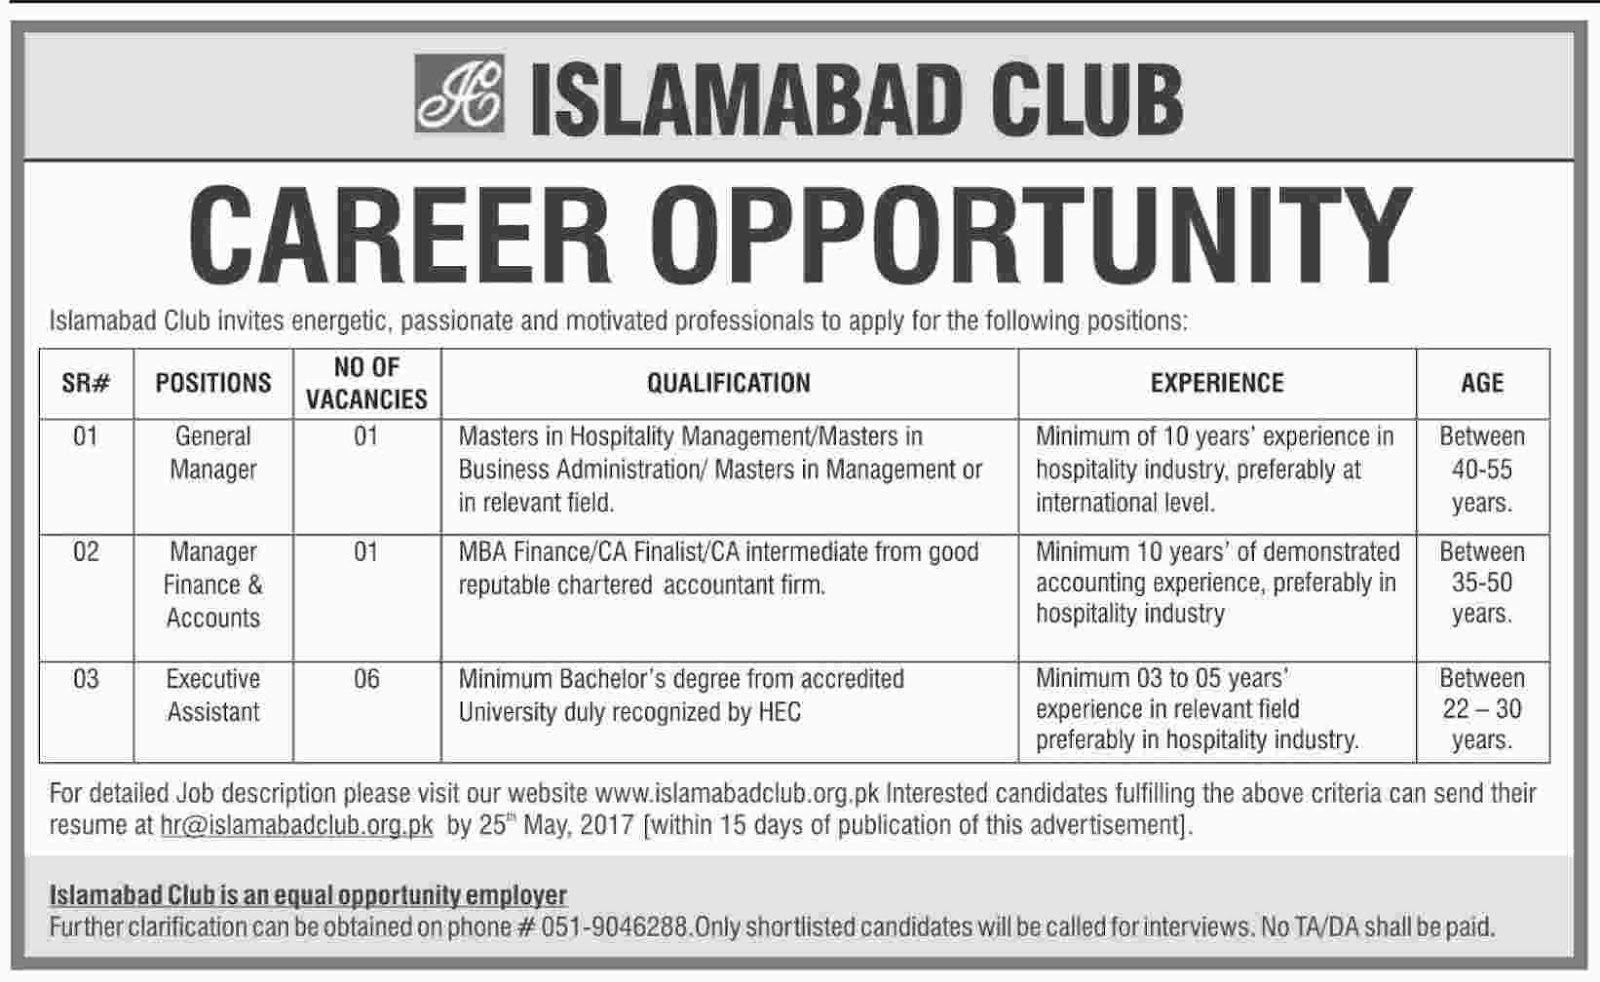 islamabad club latest jobs 8+ vacancies 9 may 2017